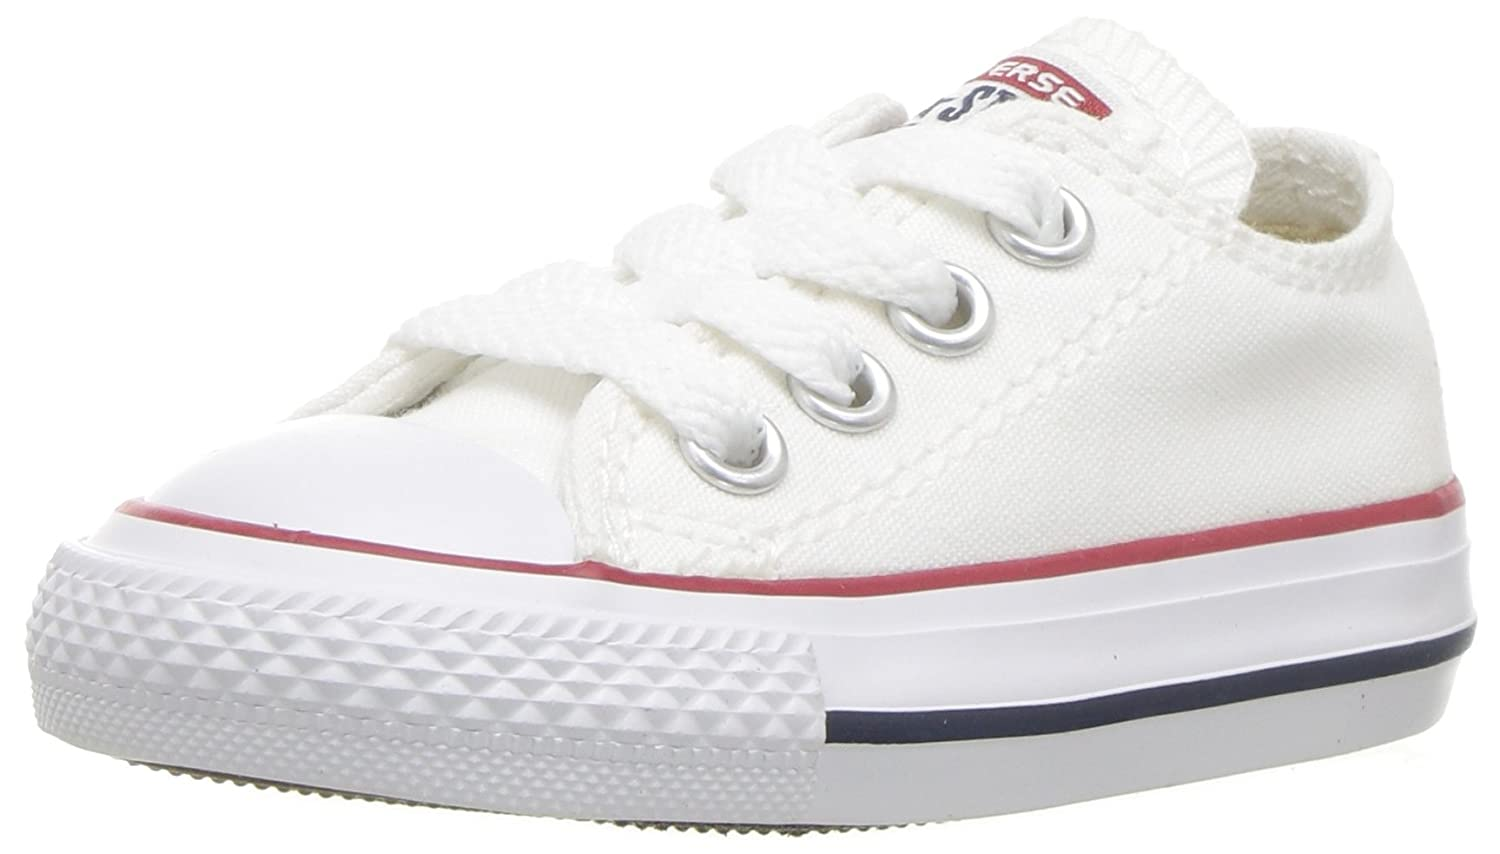 Converse Chuck Taylor All Star Season OX, Unisex Sneaker  13 M US Little Kid|Optical White